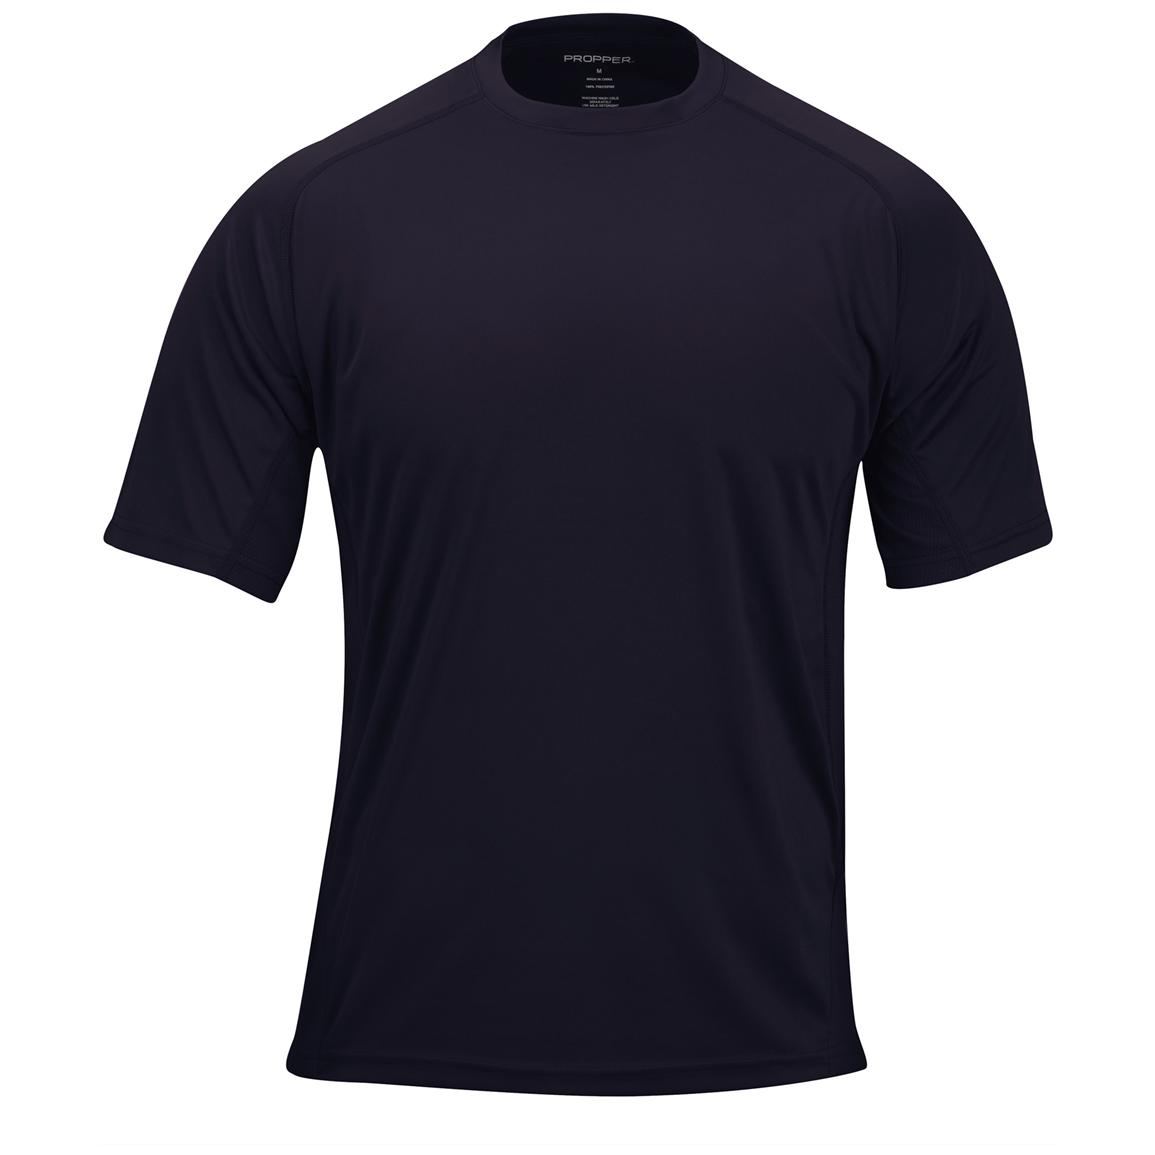 Men's Propper™ System T-shirt, LAPD Navy